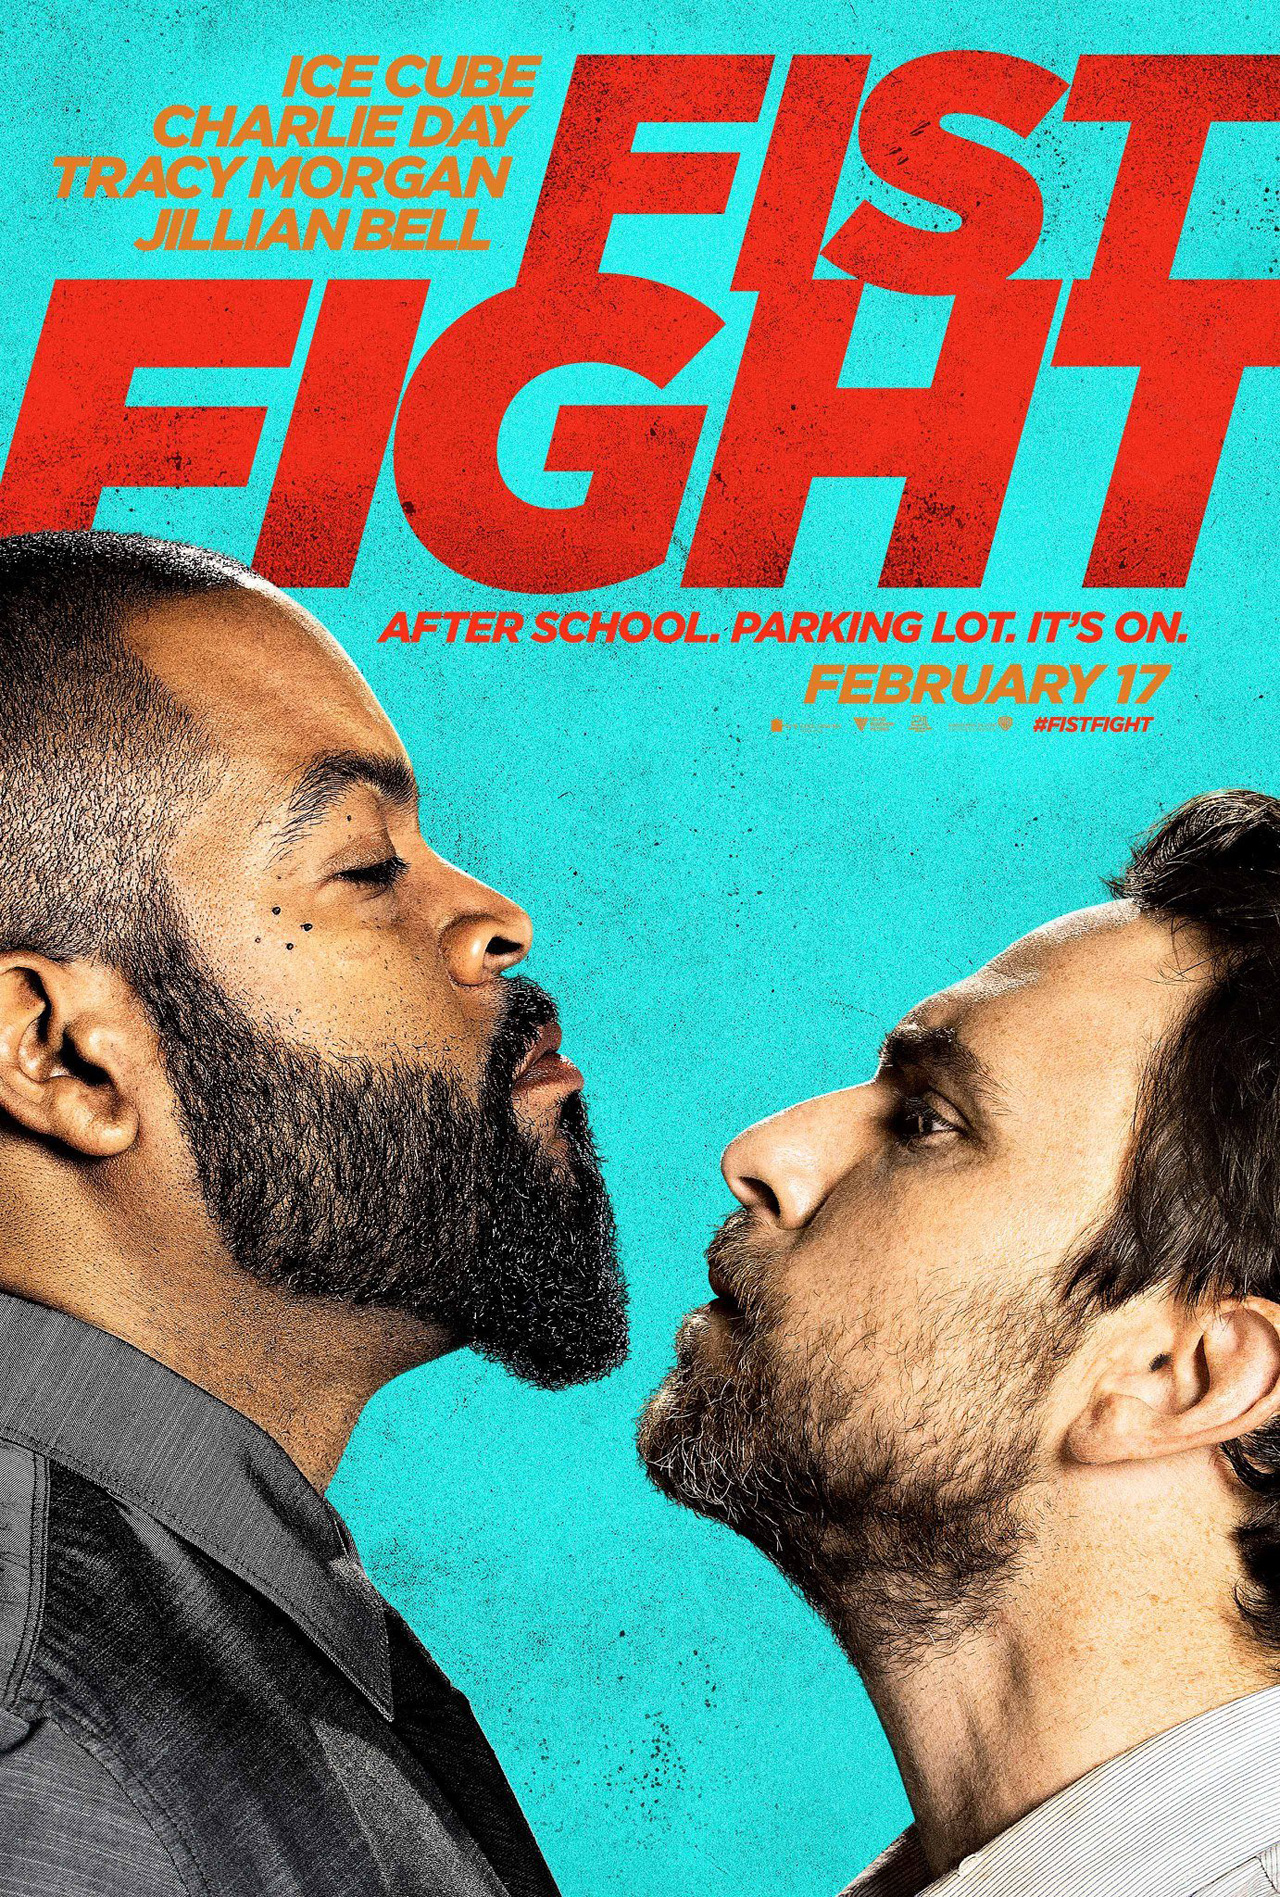 Fist Fight Trailer & Poster